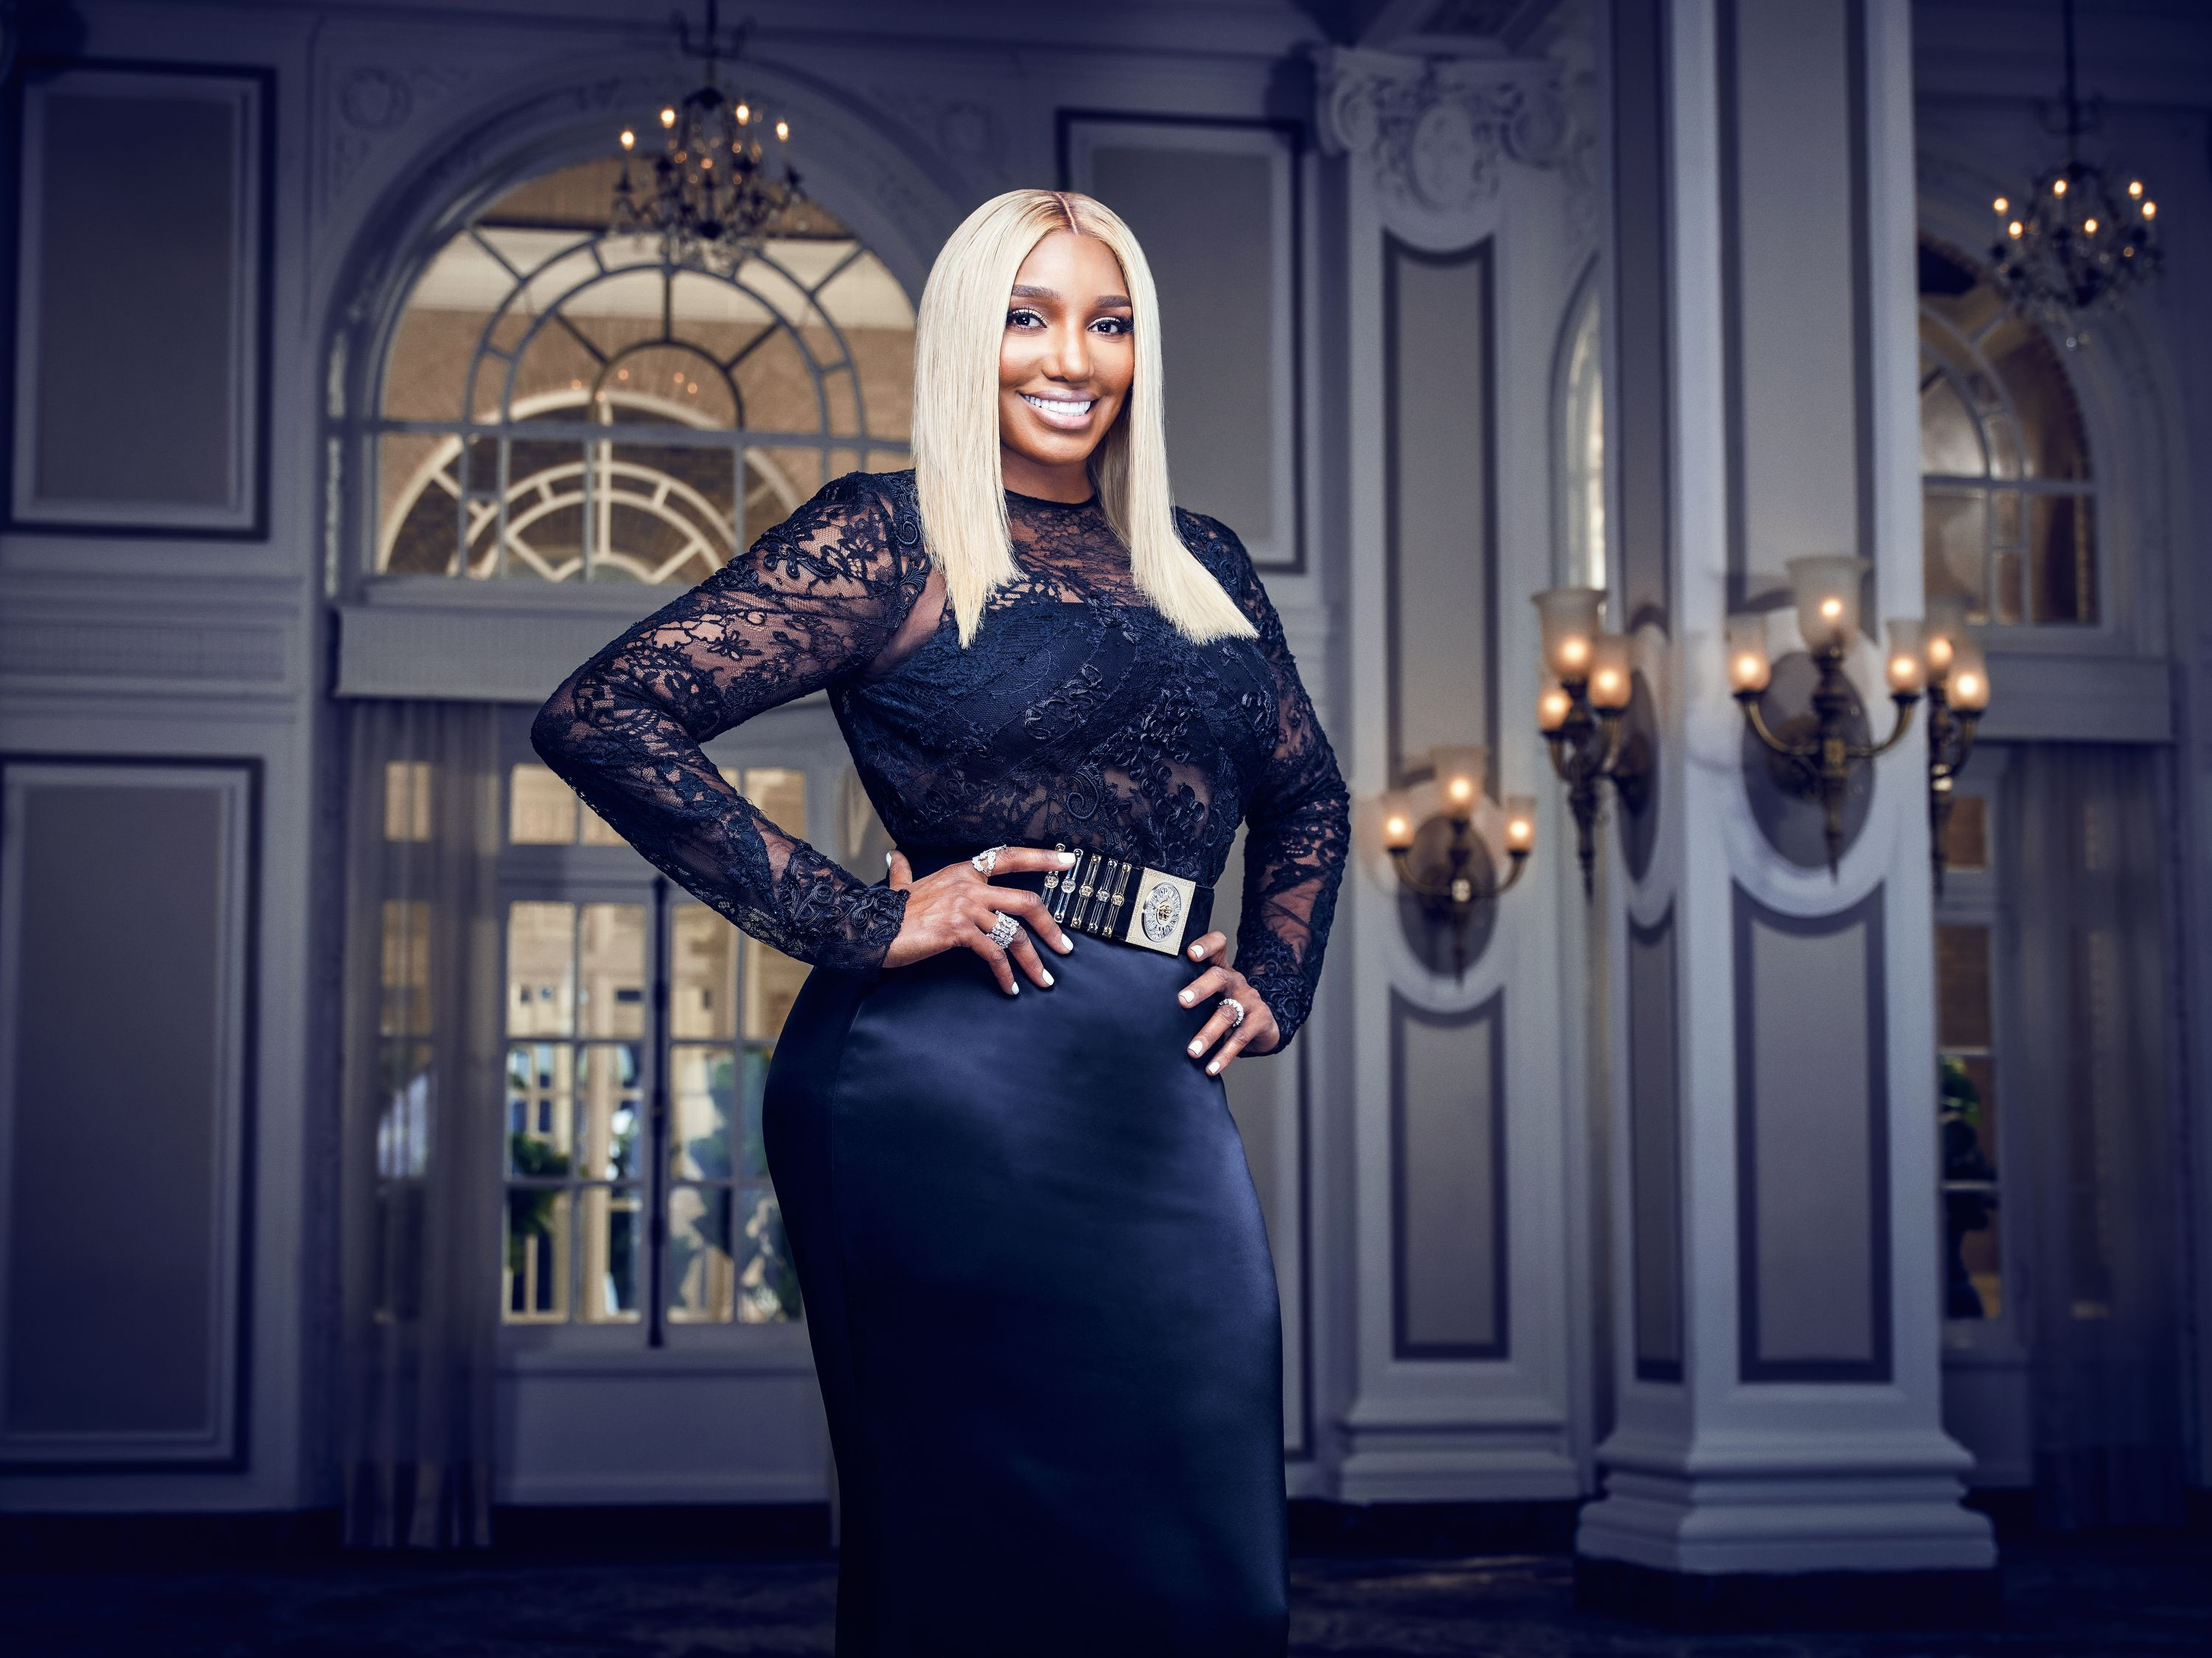 """NeNe Leakes for """"The Real Housewives of Atlanta"""" Season 12 in 2019 